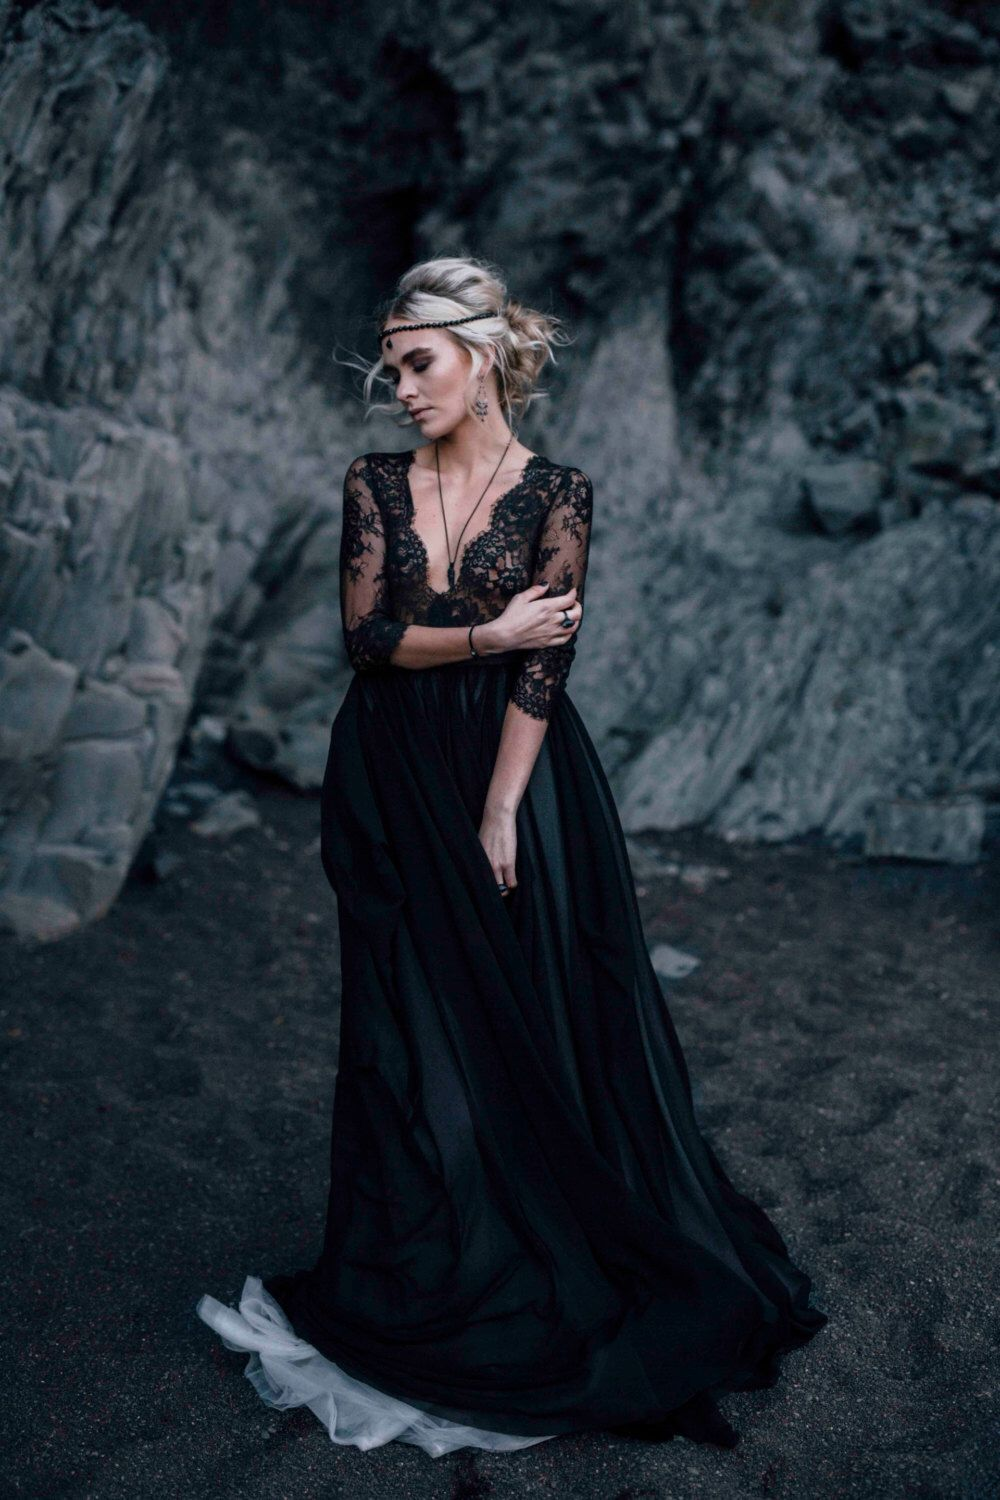 Black lace deep vneck wedding dress with long sleeve scalloped